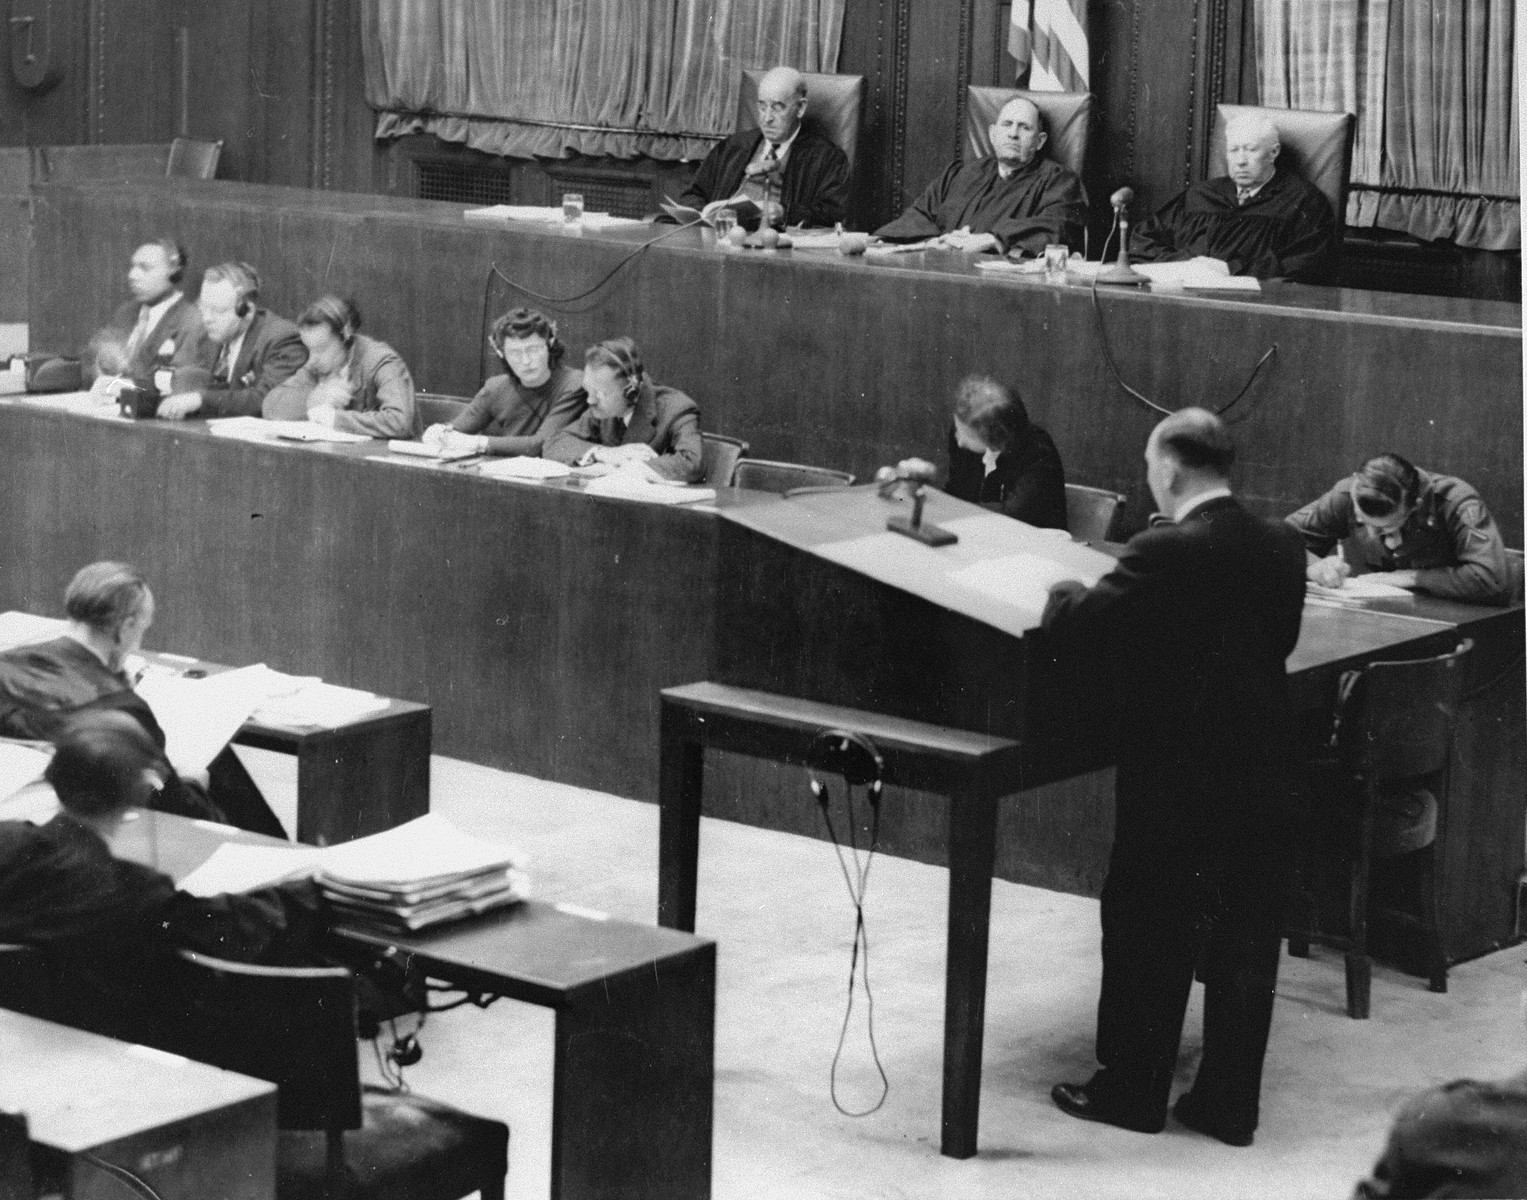 A lawyer presents an argument at the podium during a session of the RuSHA Trial.